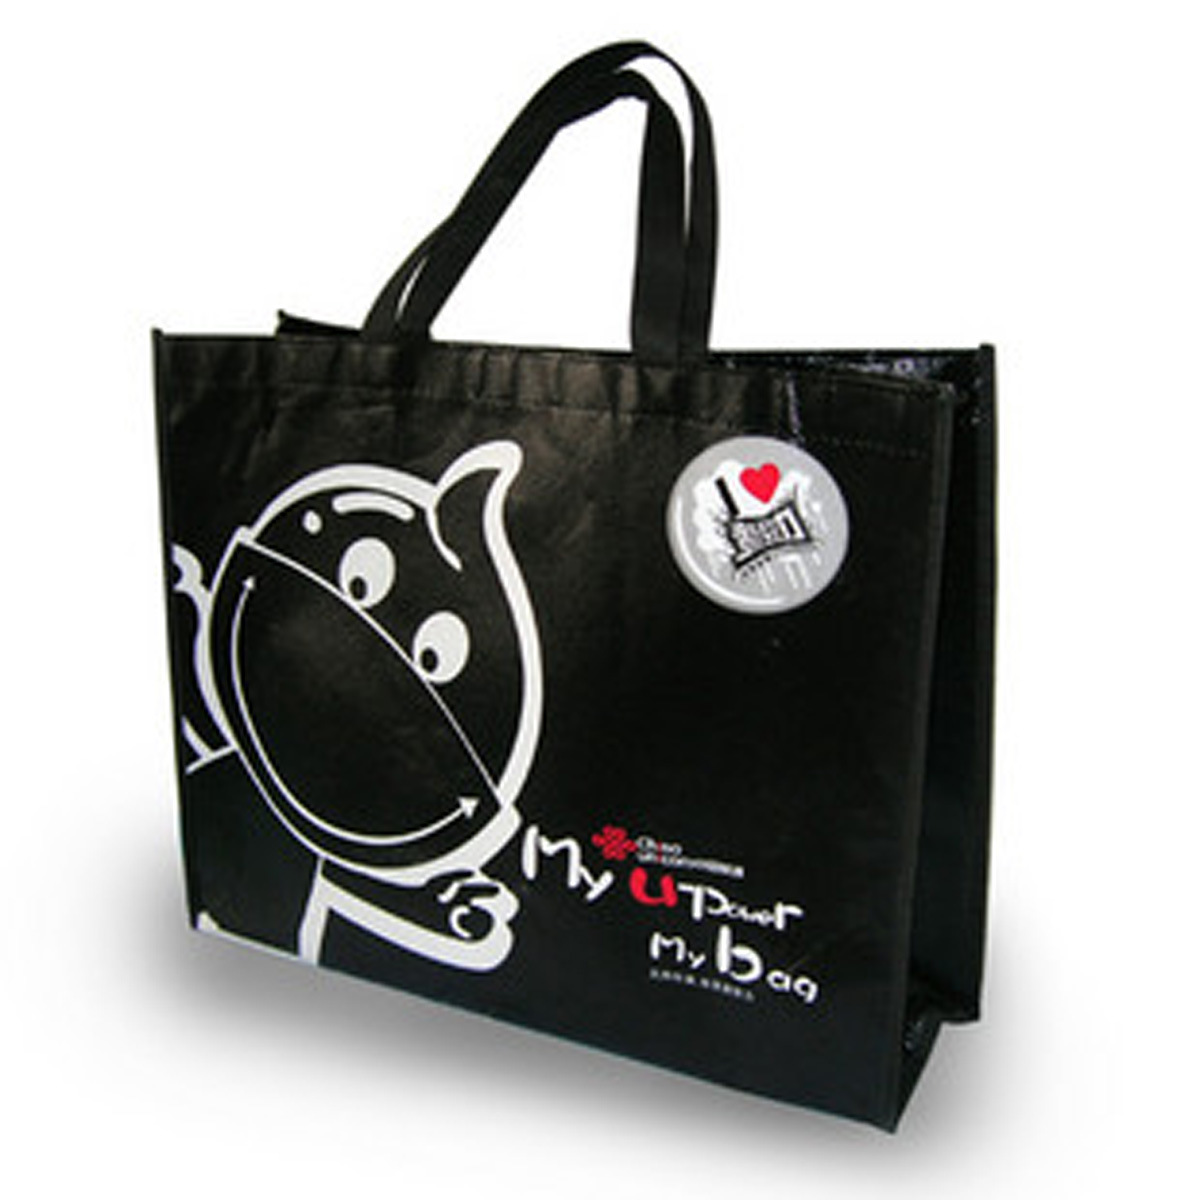 China Pp Non Woven Bag Photos Amp Pictures Made In China Com